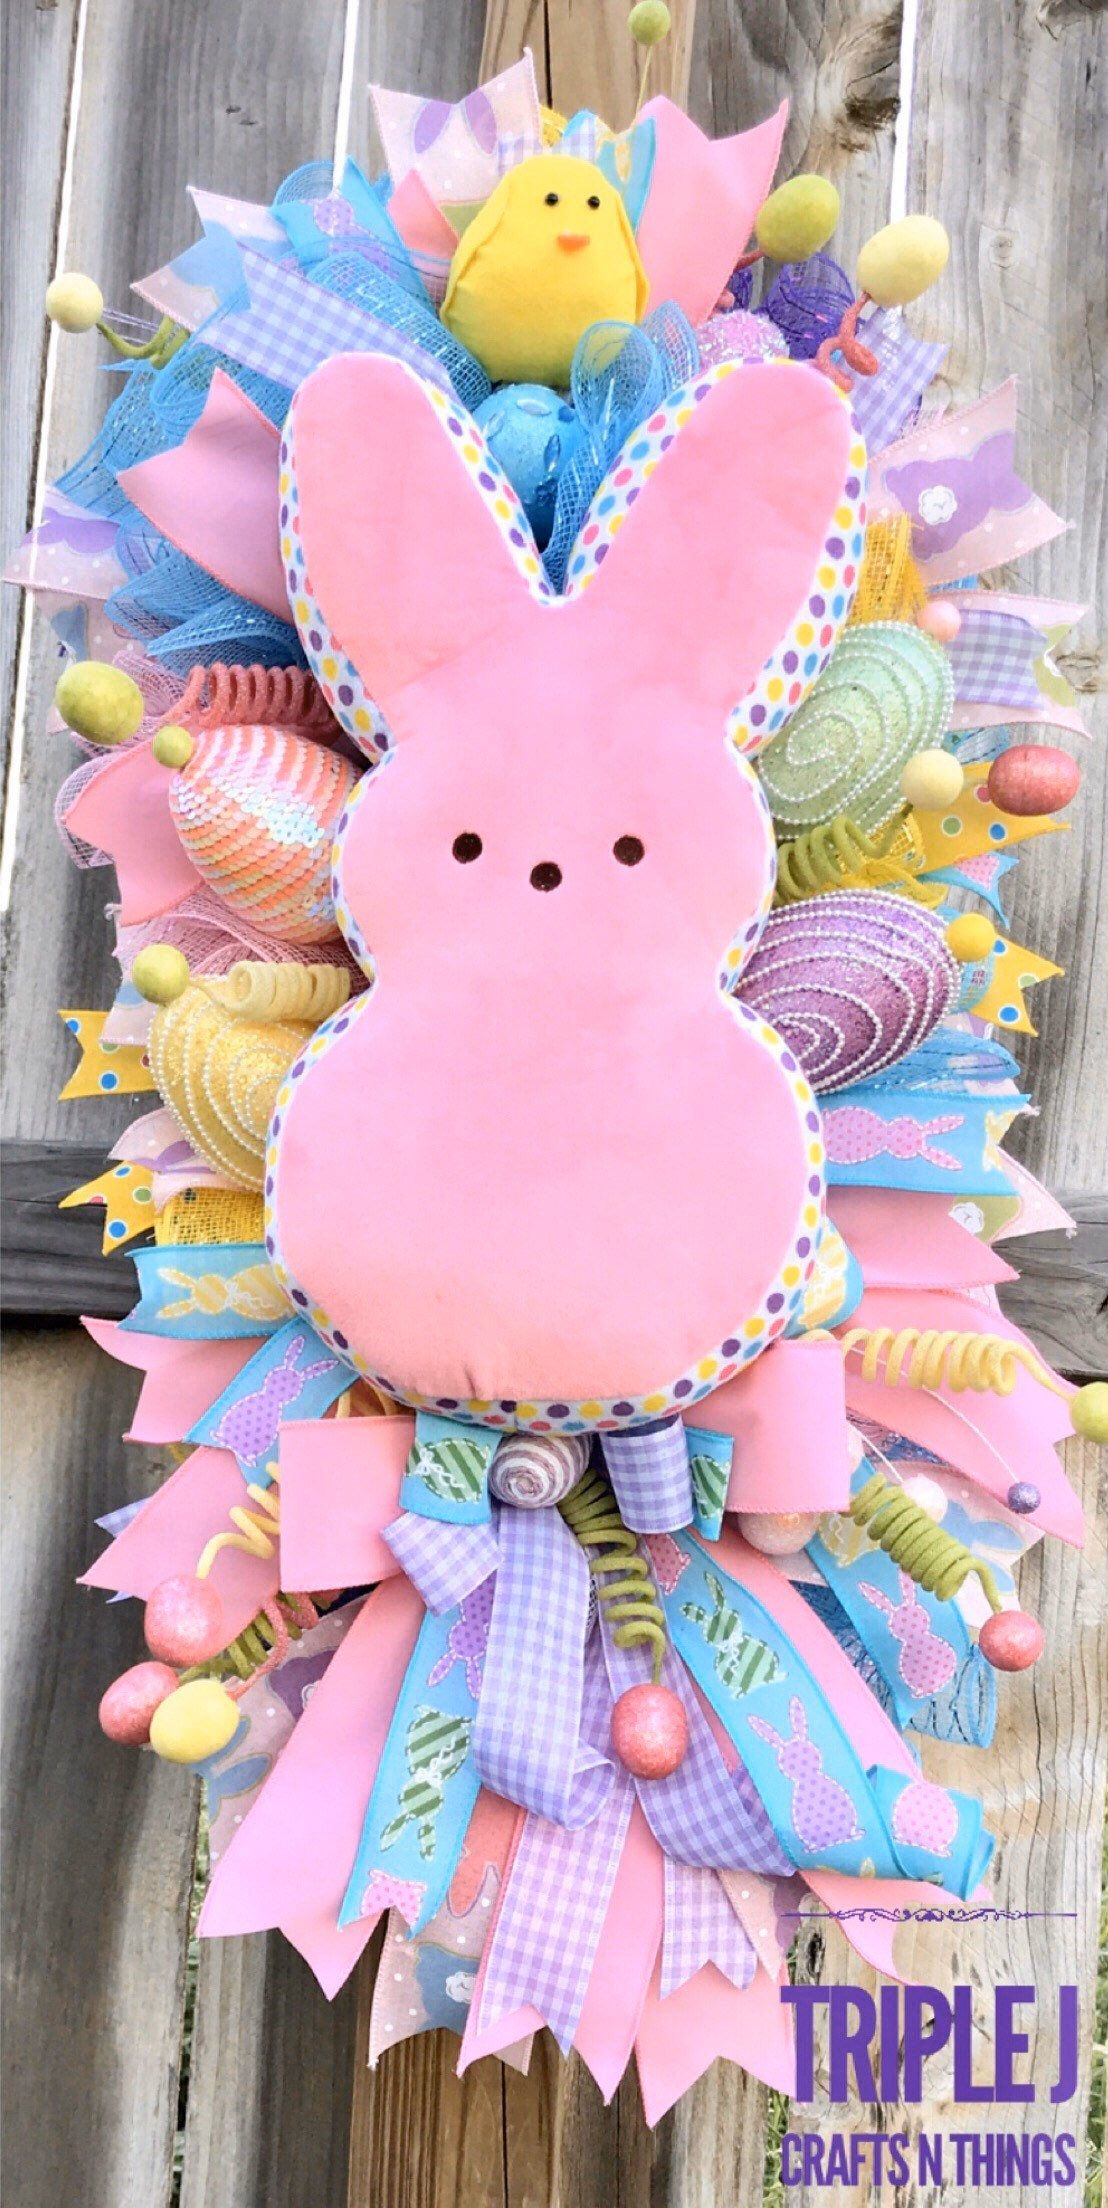 Spring Mesh Wreath Peeps Easter Swag Easter Wreath Easter Swag with Chicks